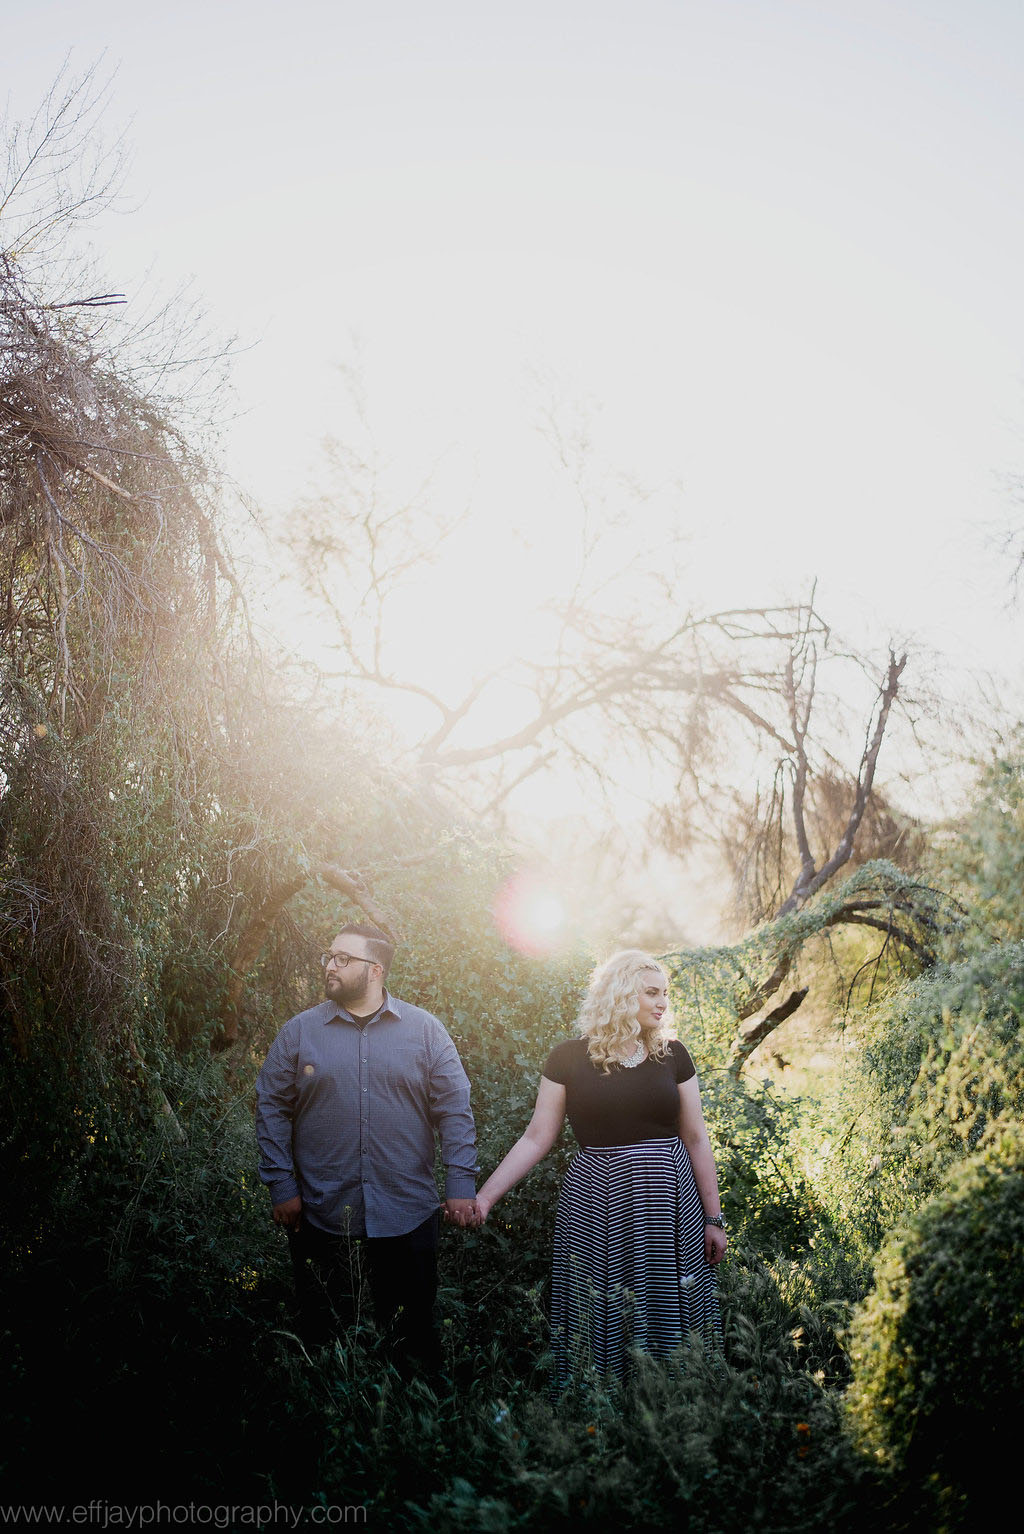 Austin Wedding Photographer Destination Arizona Desert Engagement Session007.jpg